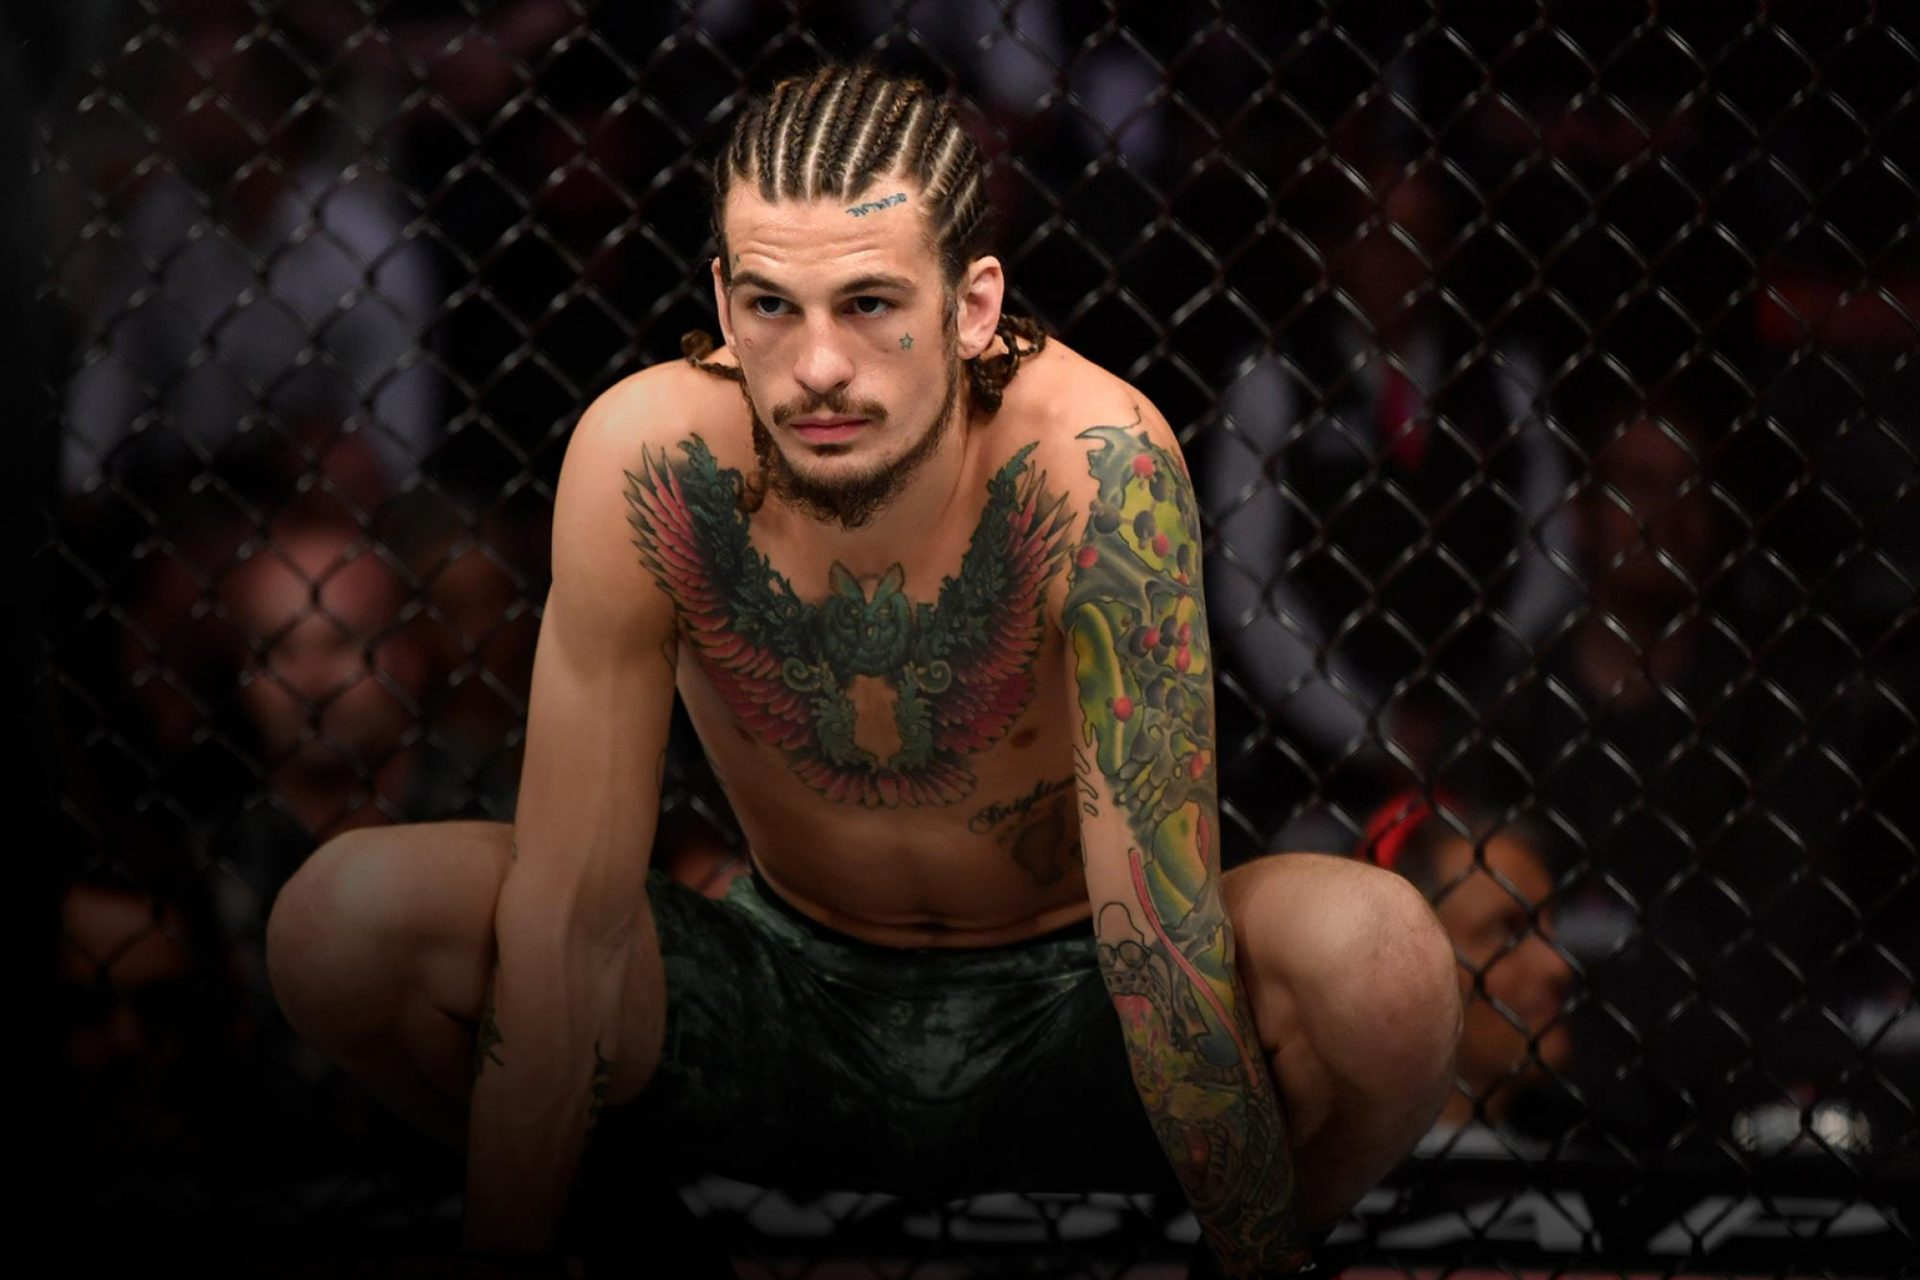 Sean O'Malley plans to look out for other options after UFC contract is over - SEAN